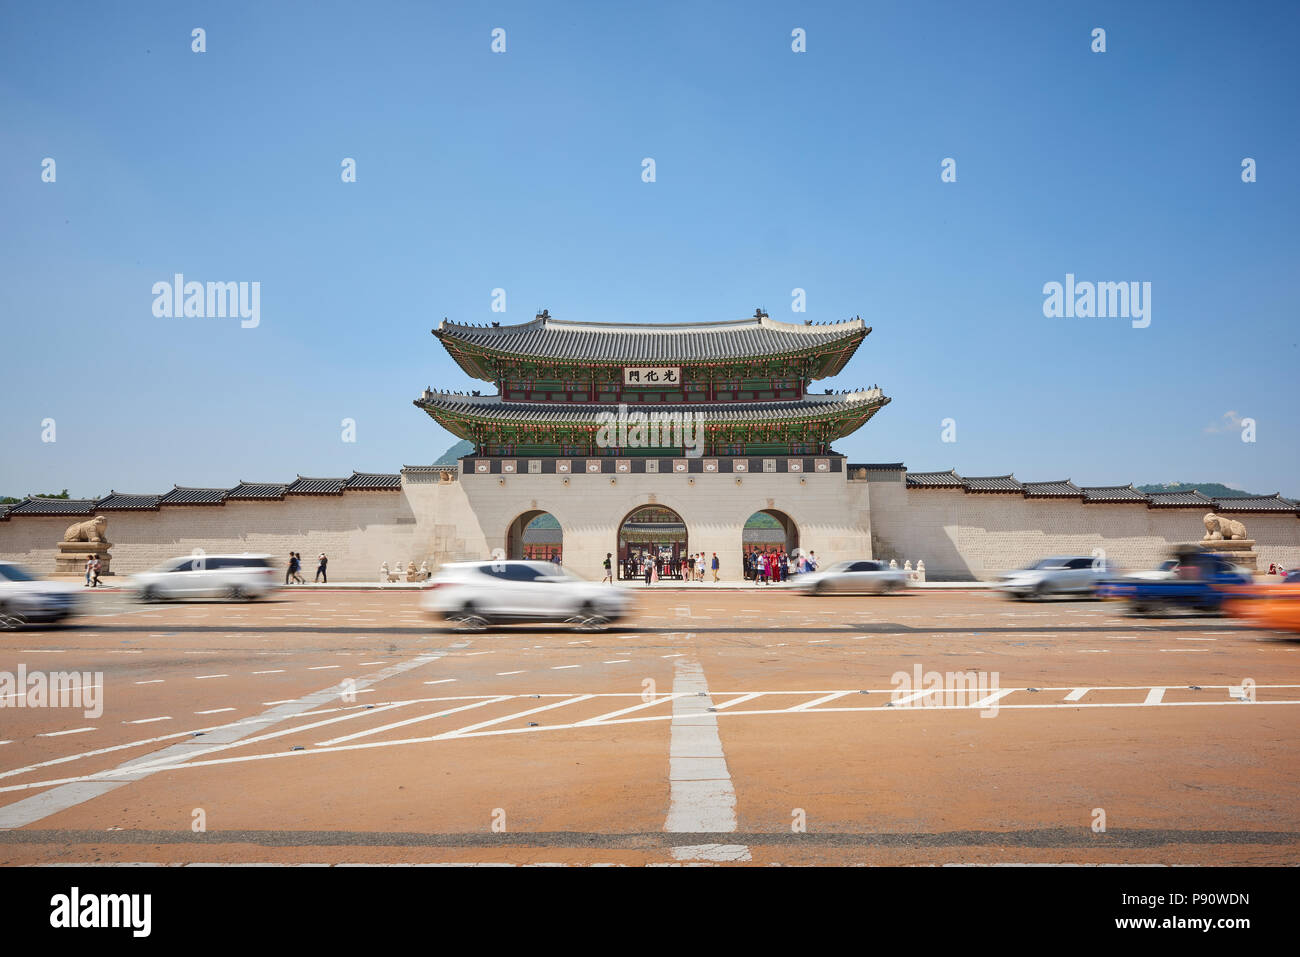 Motion blurred traffic at the entrance to Gyeonghoeru Palace in Seoul, South Korea. Stock Photo